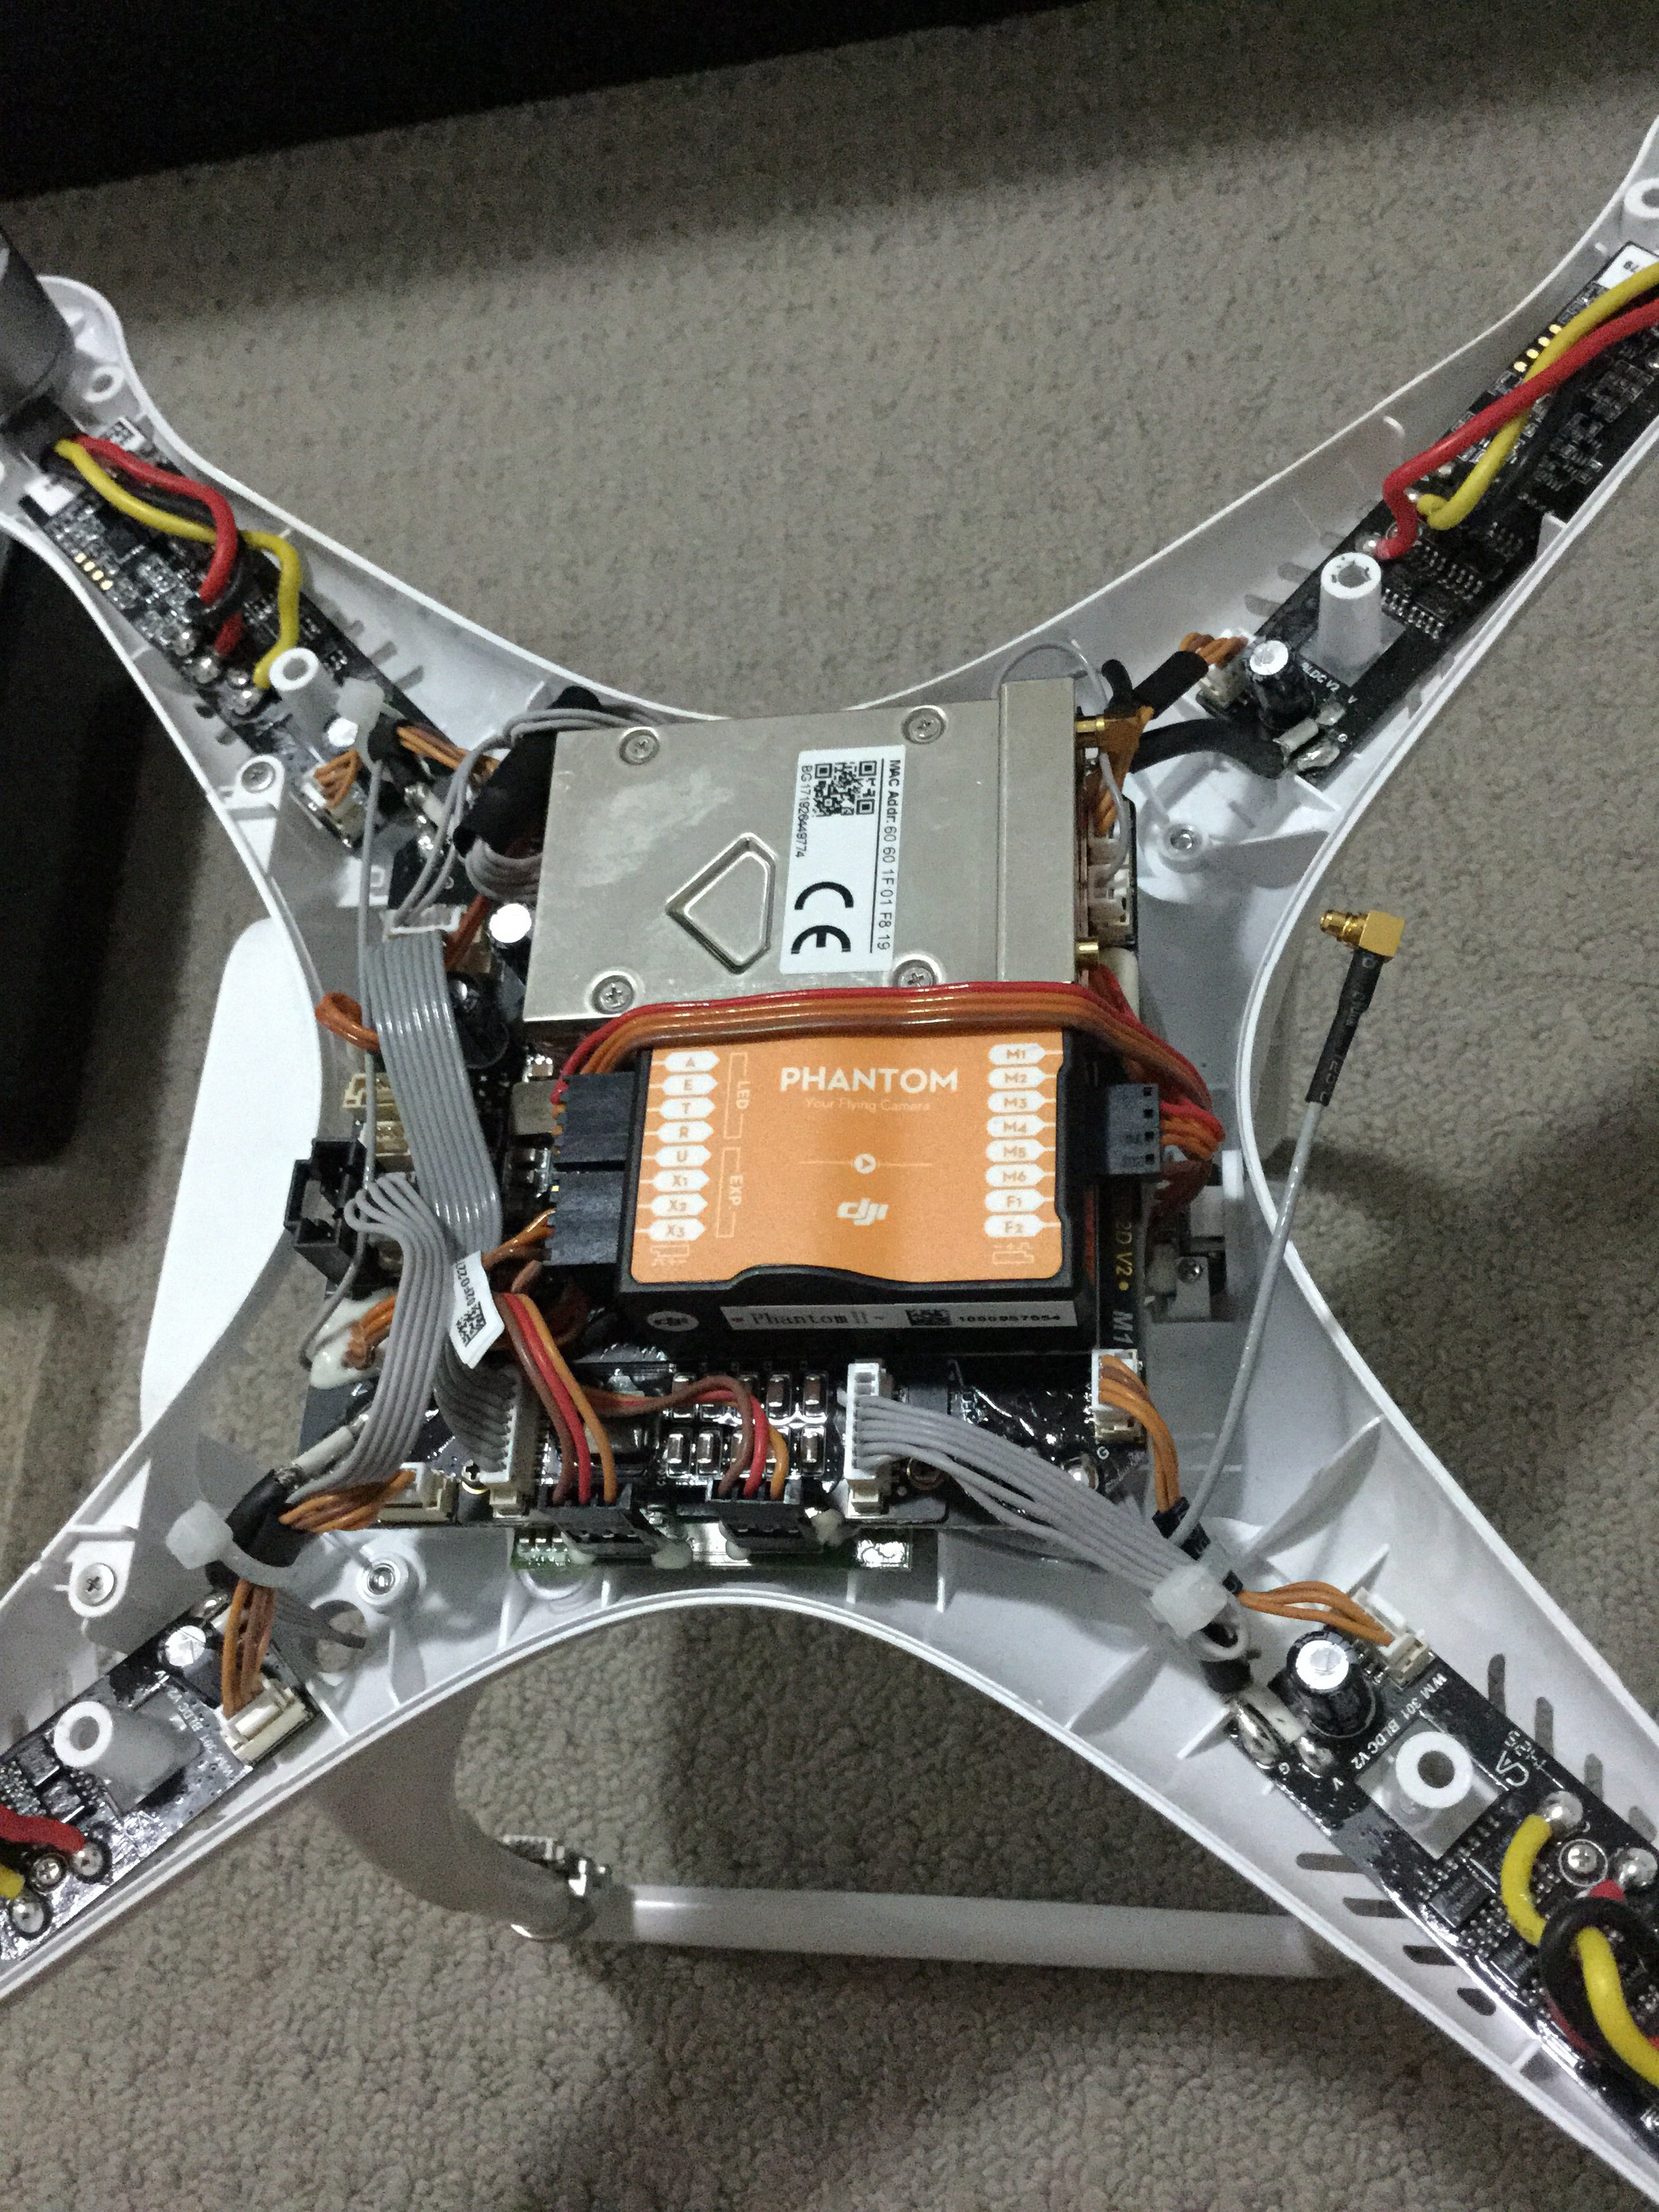 Naza V2 Wiring Diagram Com Bull View Topic V Iosd Mini Pmu Or Detailed Dji Phantom Drone Forum Image